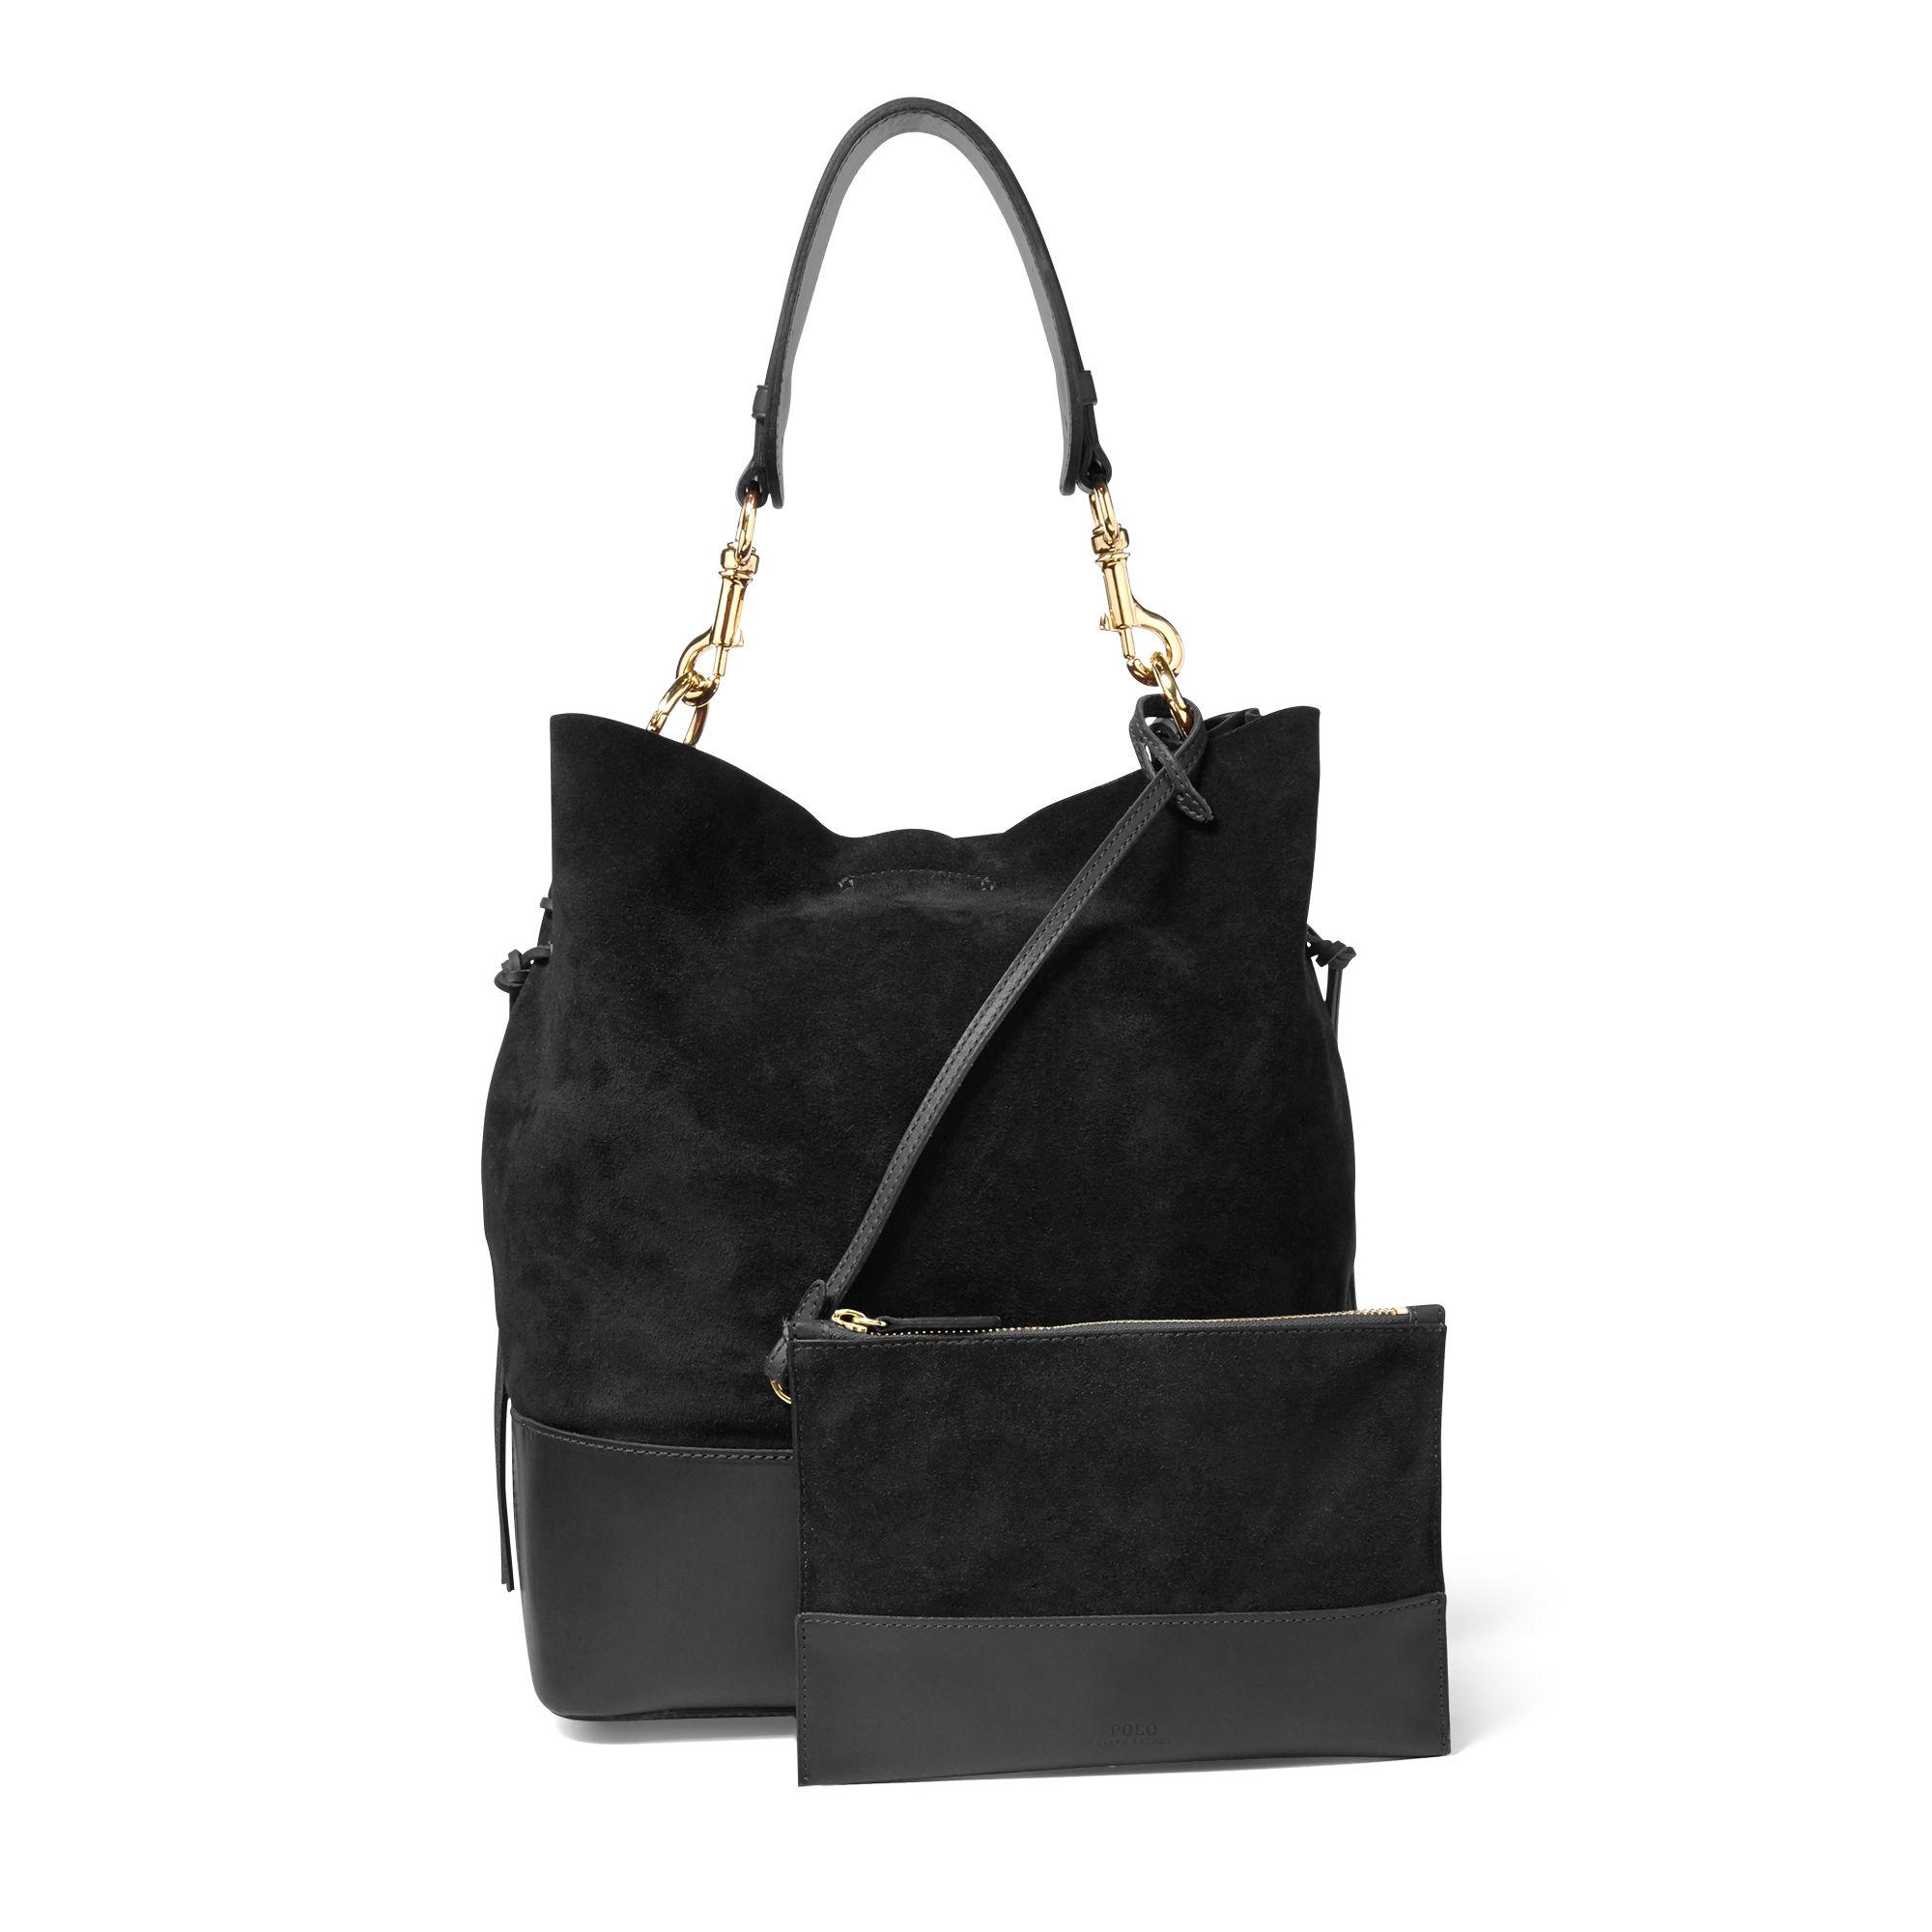 Lyst - Polo Ralph Lauren Suede Square Hobo Bag in Black f43ba90099